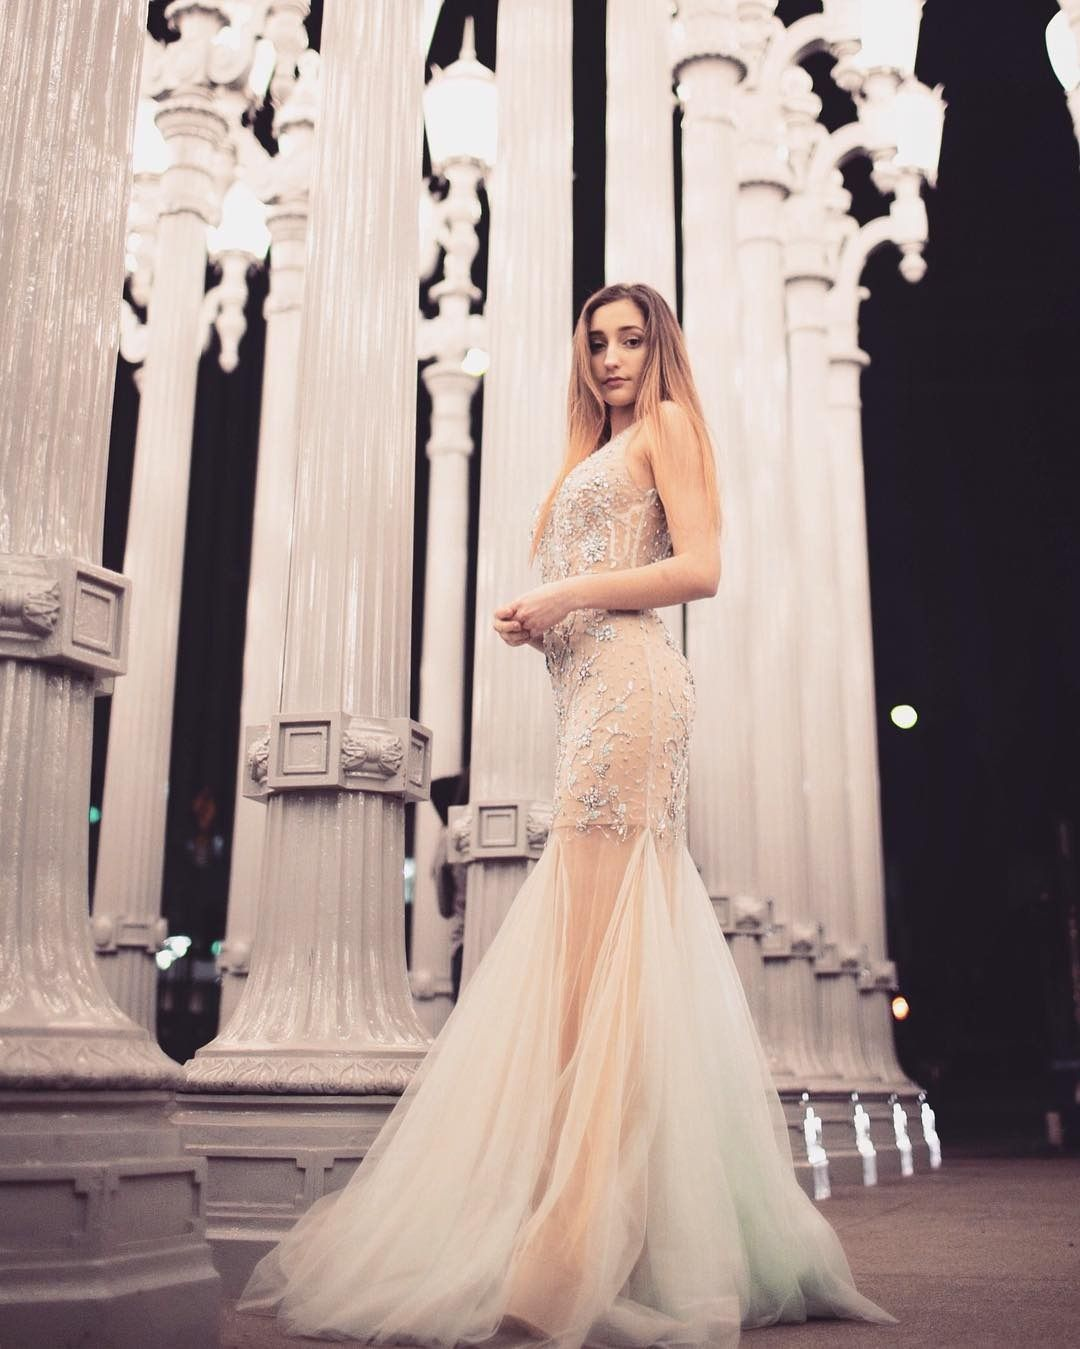 Hailey sani dons this illusion mermaid prom dress with beaded bodice